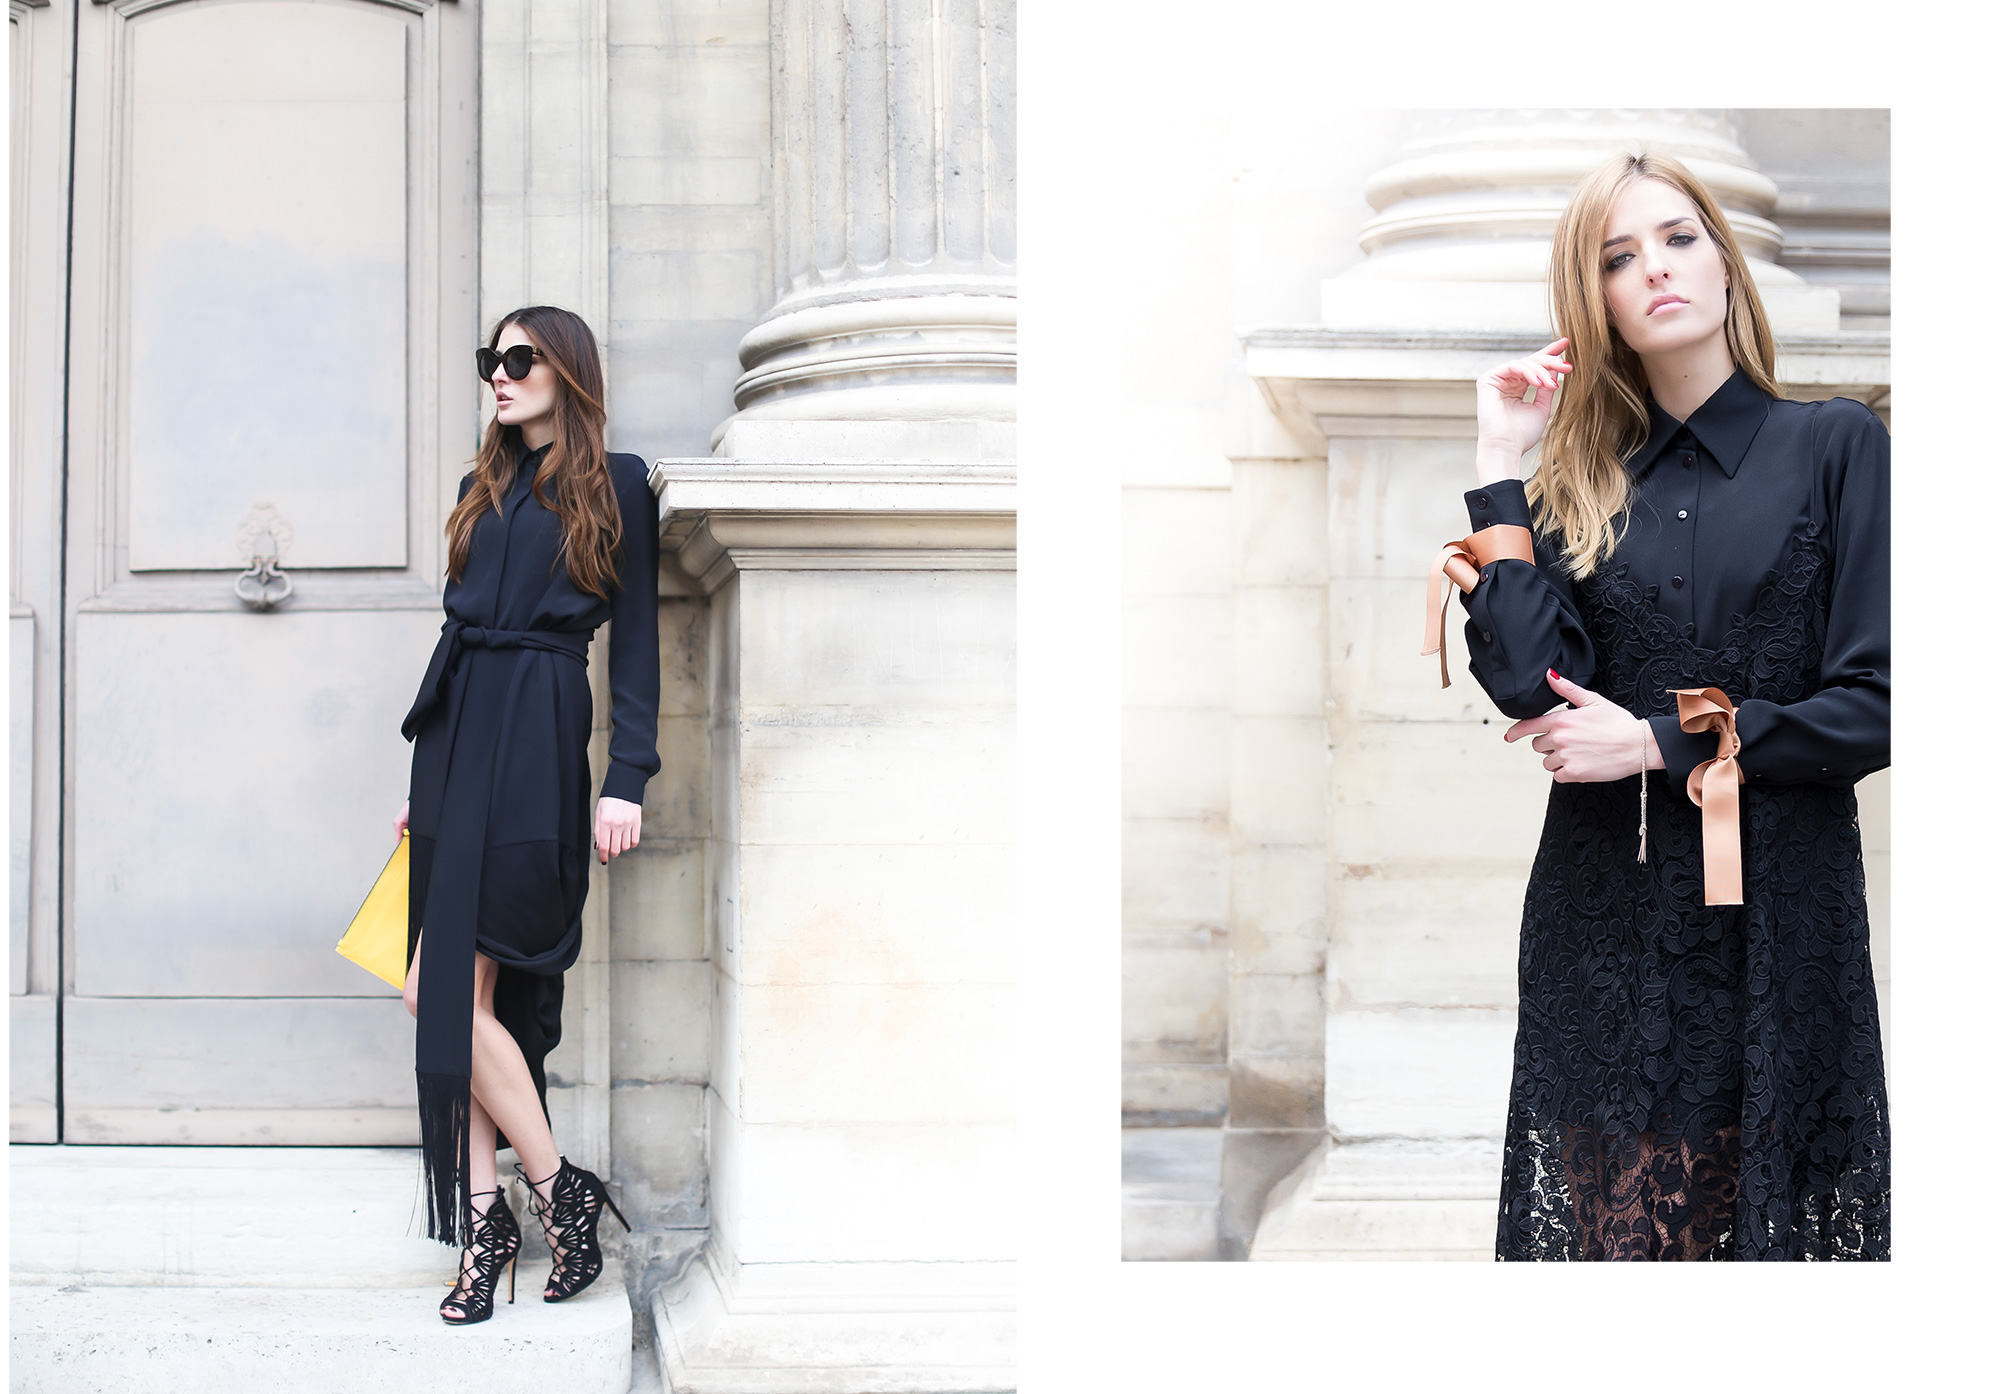 Bloggers Desiree and Jennifer Selmanovic of Des & Jen photographed at Cour Carée in Paris by Armenyl.com